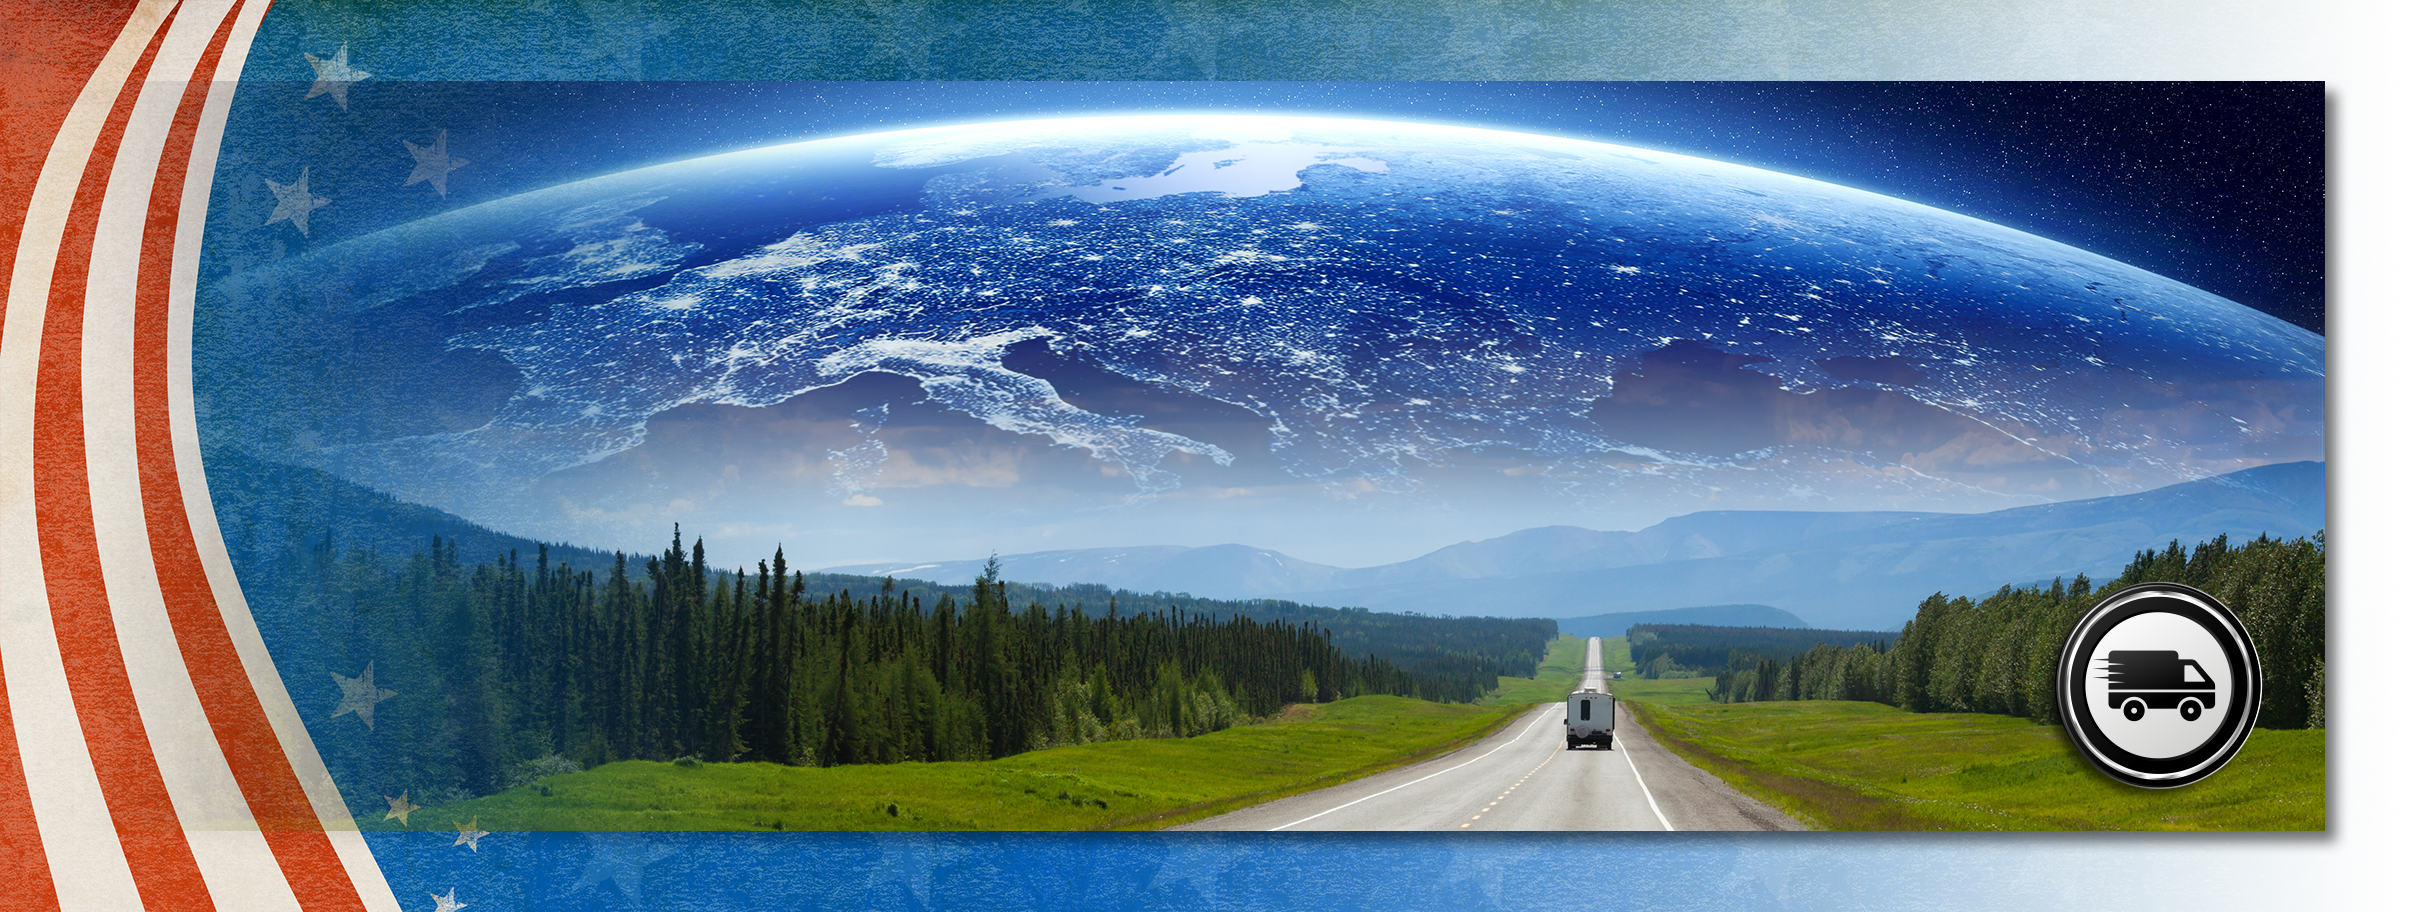 RV Road Worldwide Delivery Lakeshore RV